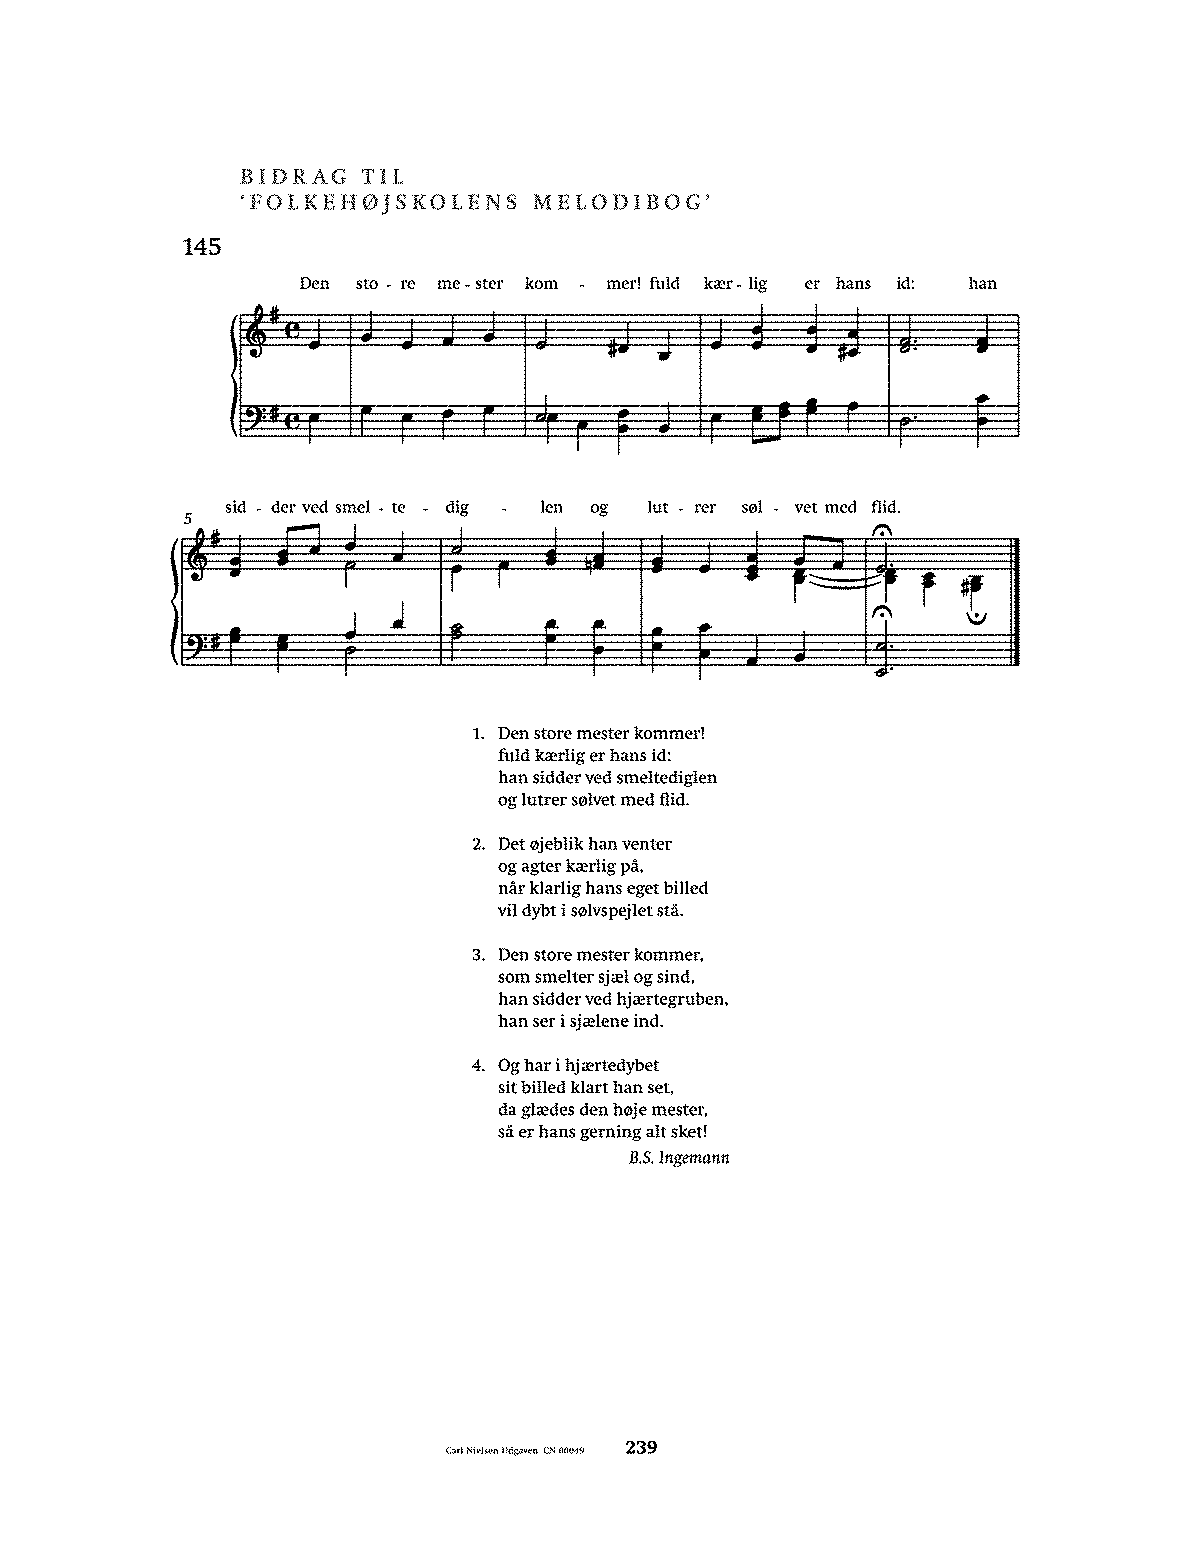 PMLP697755-1. Contribution to 'The Folk High School Melody Book' (1922).pdf